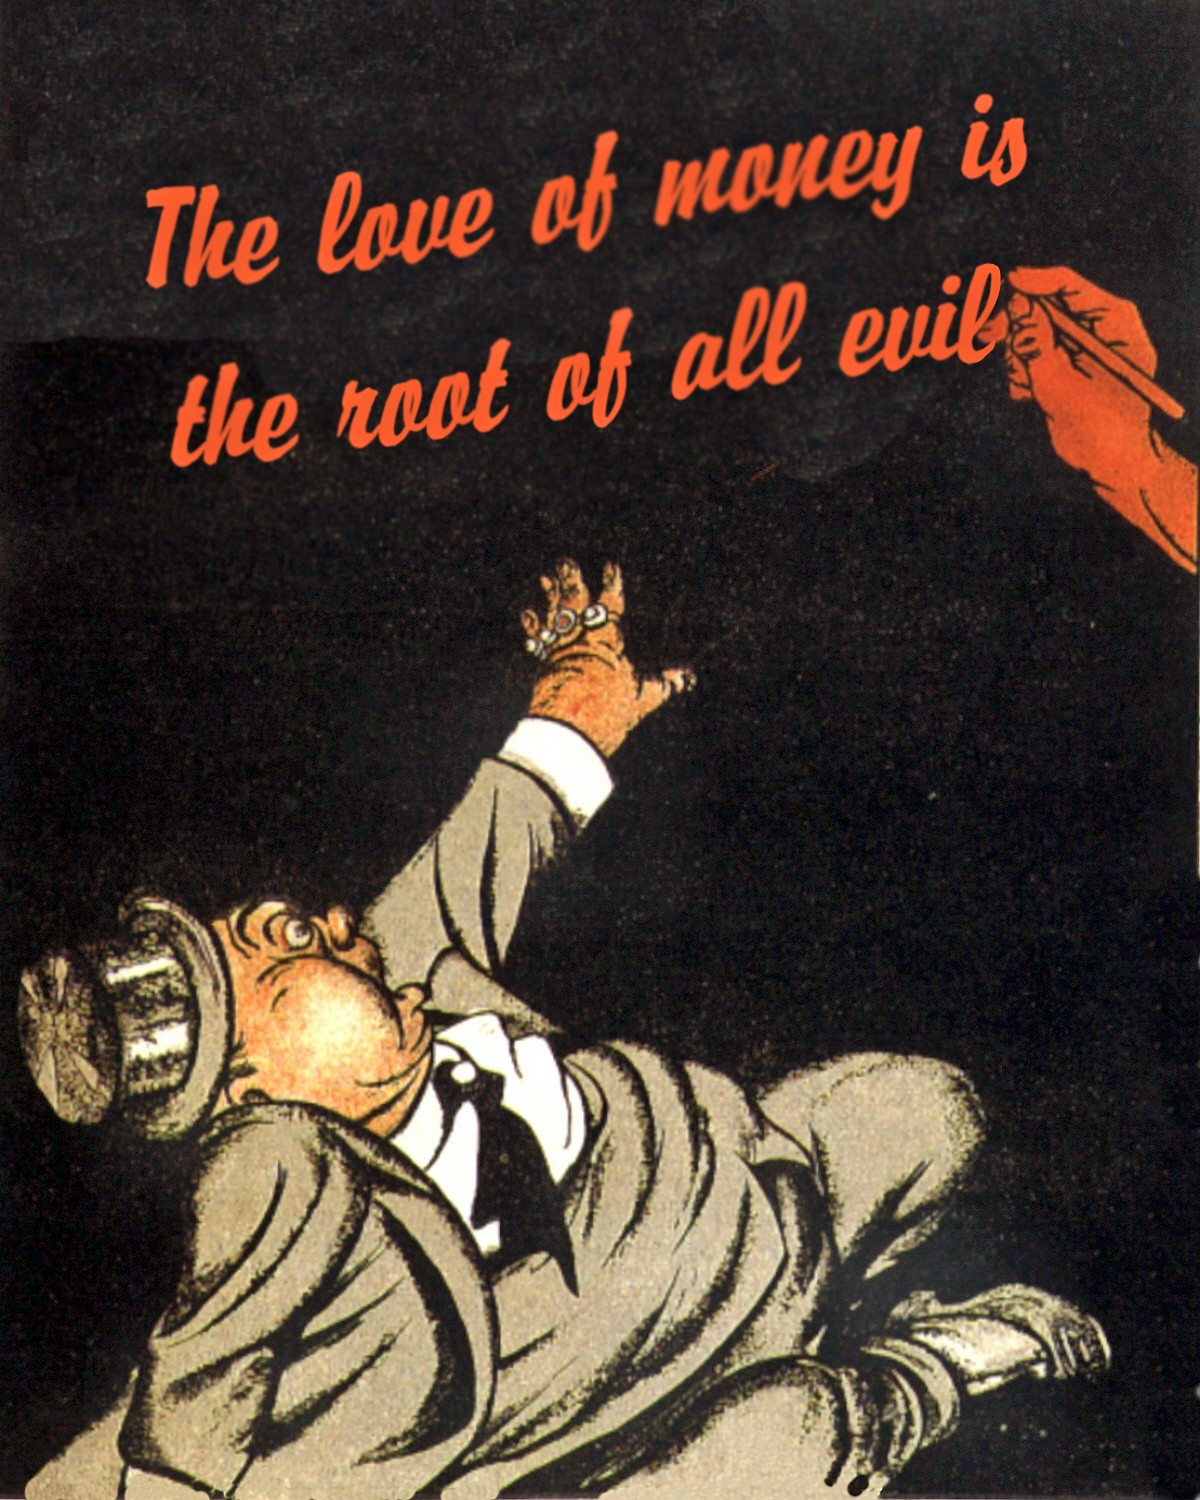 00 Unknown  Artist. The Love of Money is the Root of All Evil. 26.06.13